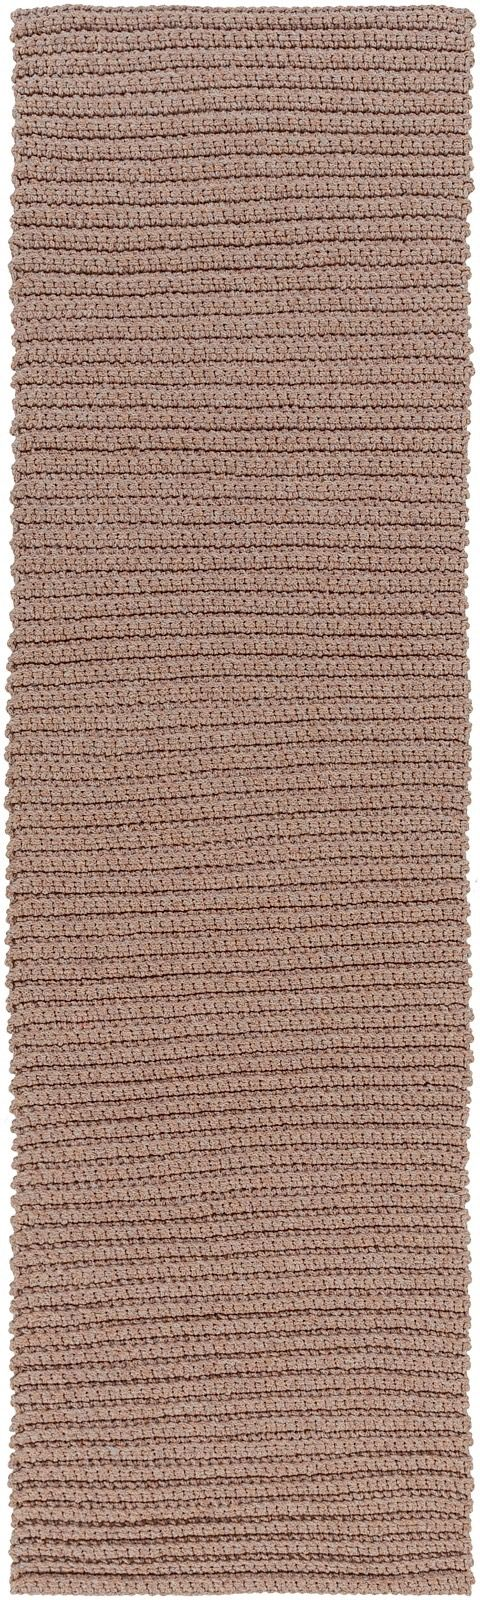 surya pura contemporary area rug collection